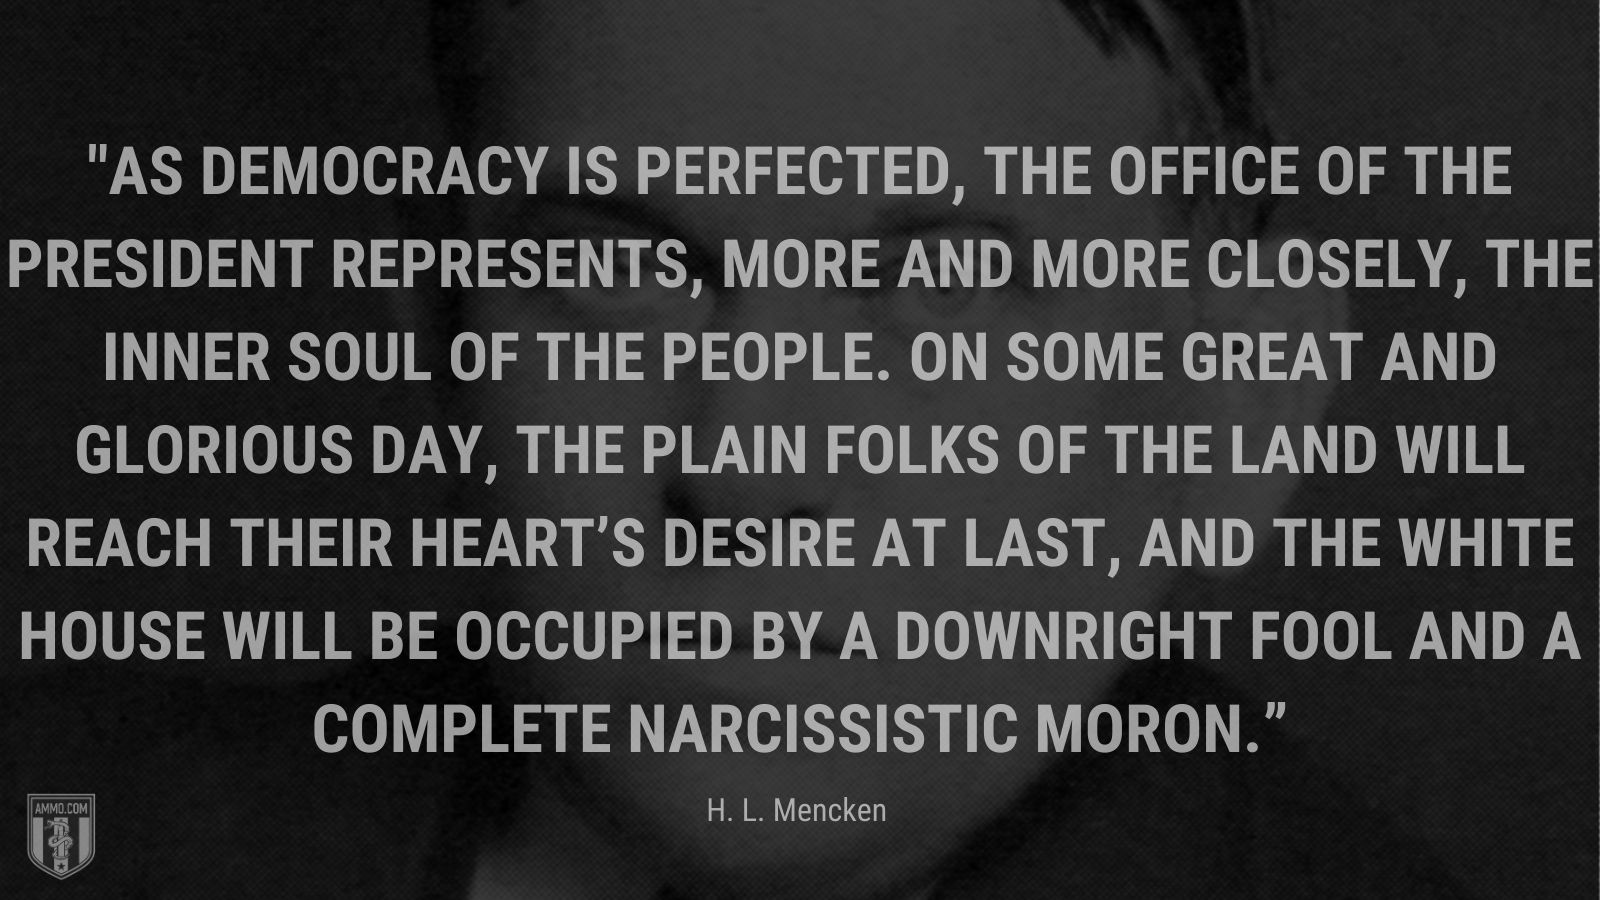 """""""As democracy is perfected, the office of the President represents, more and more closely, the inner soul of the people. On some great and glorious day, the plain folks of the land will reach their heart's desire at last, and the White House will be occupied by a downright fool and a complete narcissistic moron."""" - H. L. Mencken"""